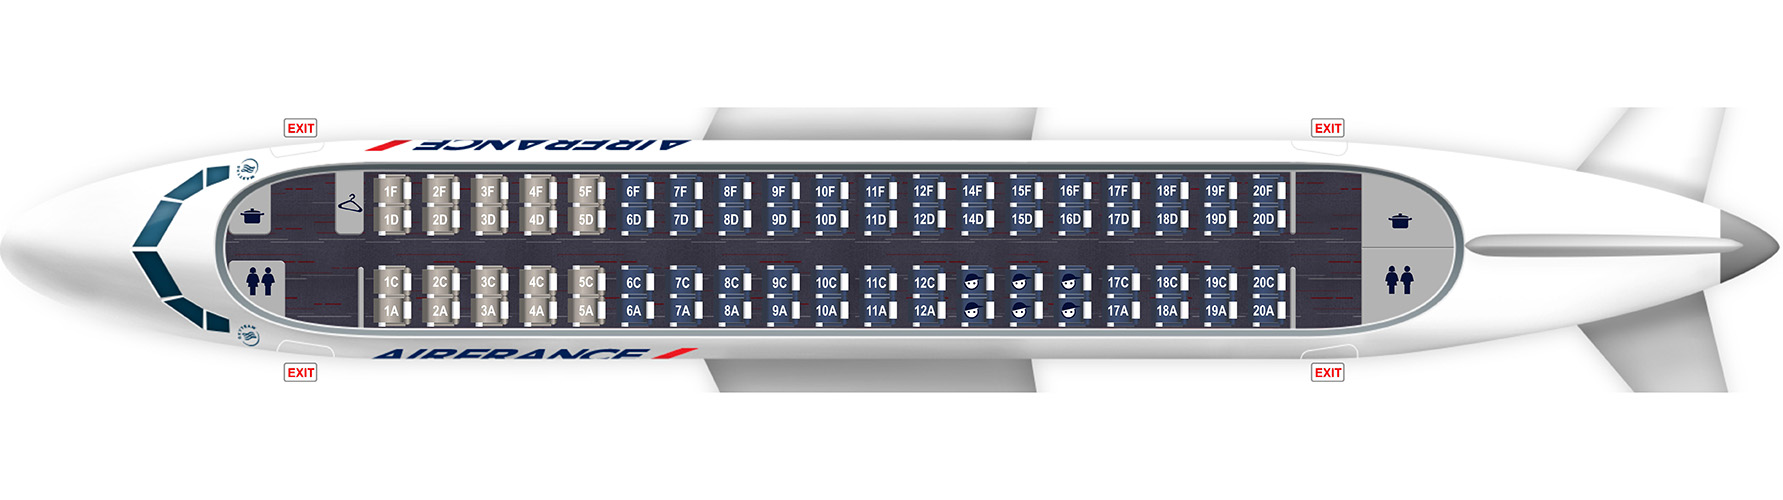 Map 8f France.Embraer 170 Map 76 Seats